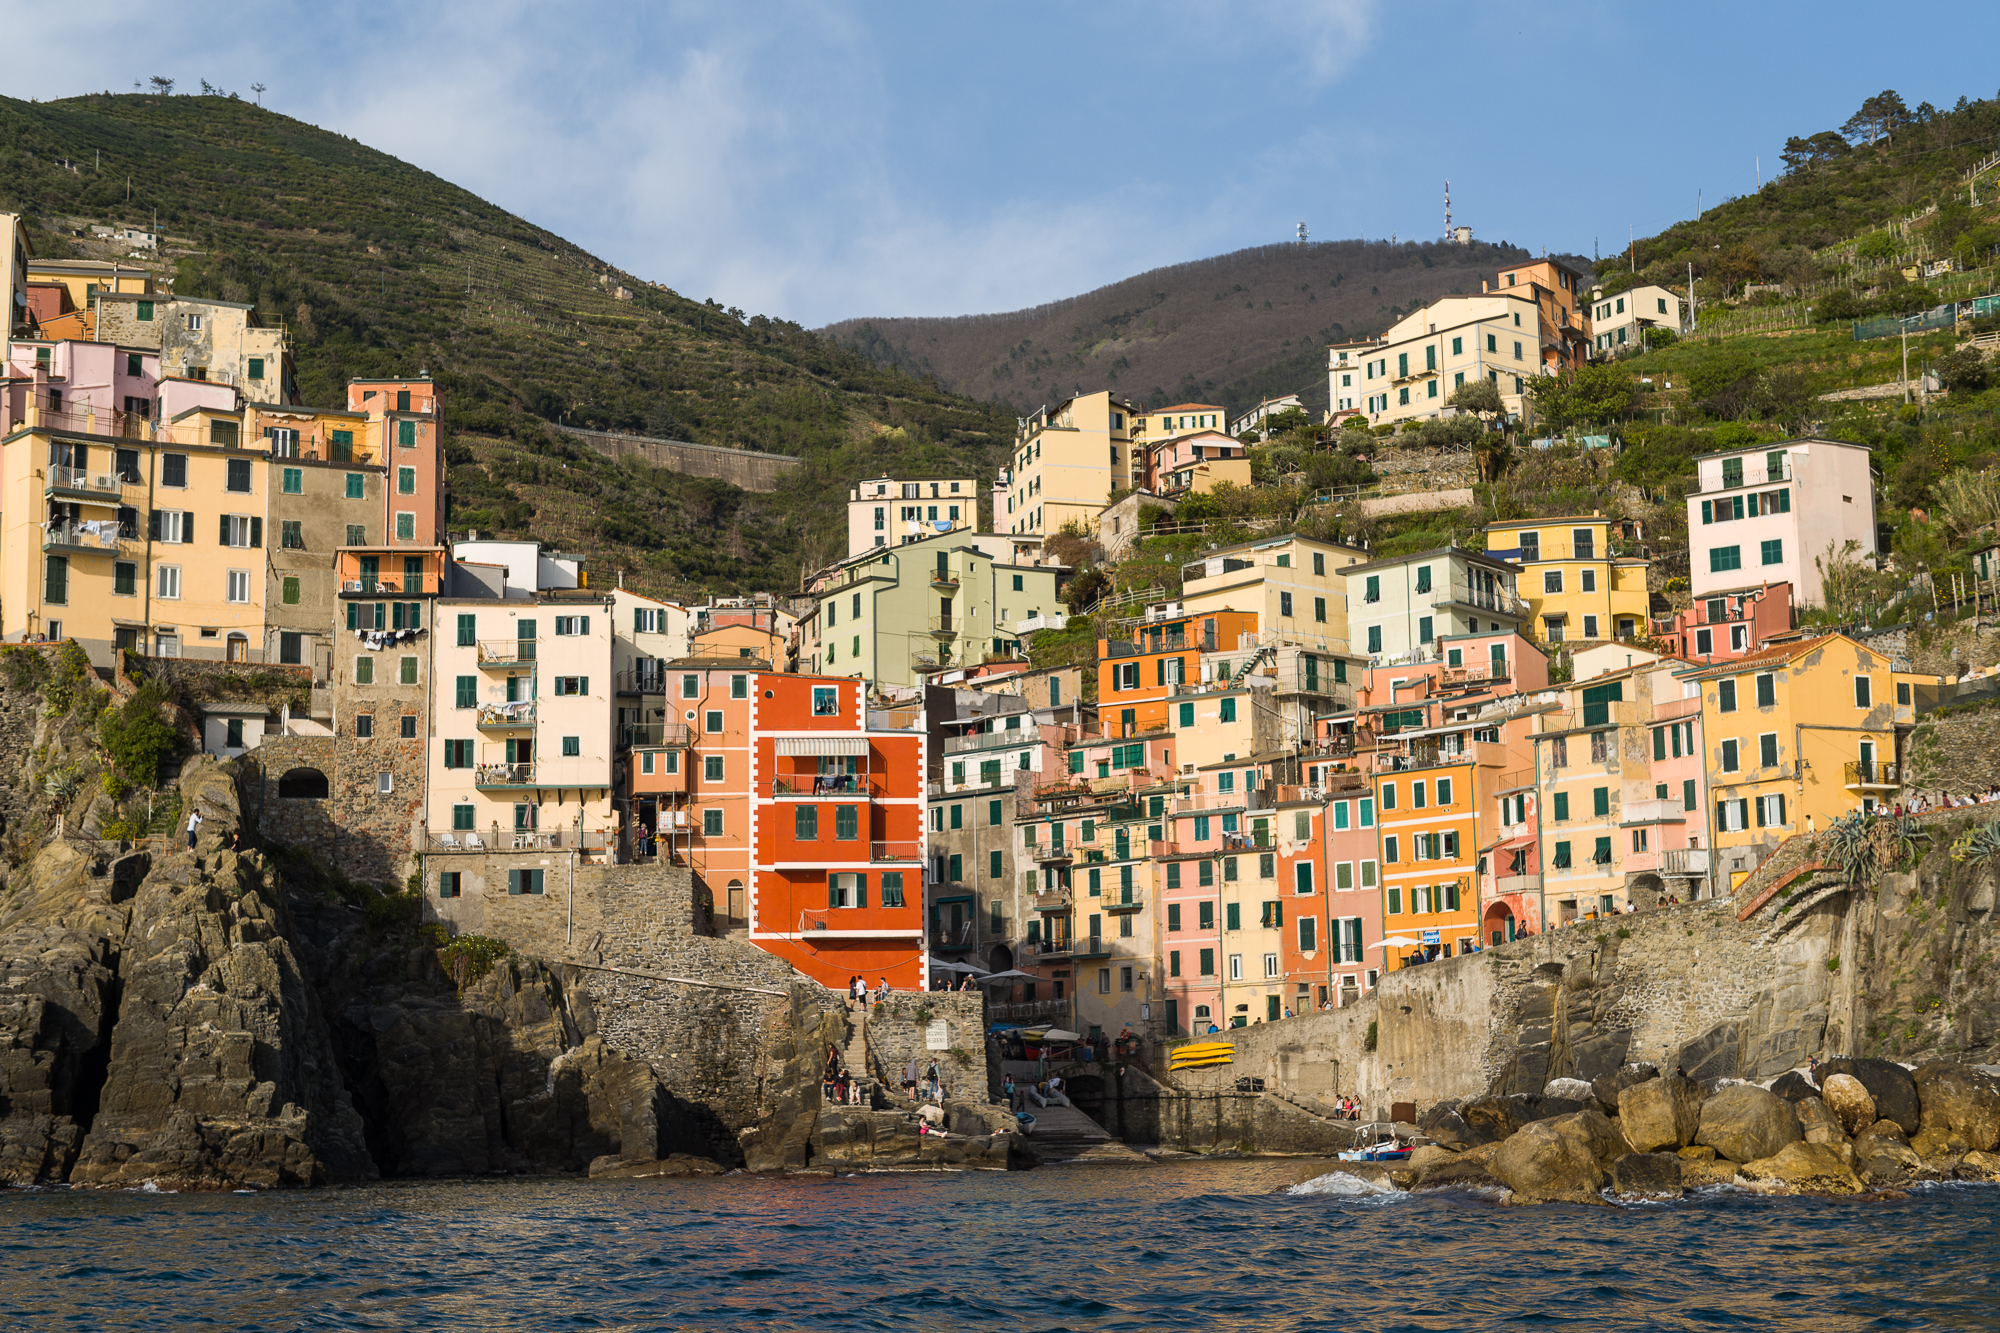 Cinque Terre from the sea